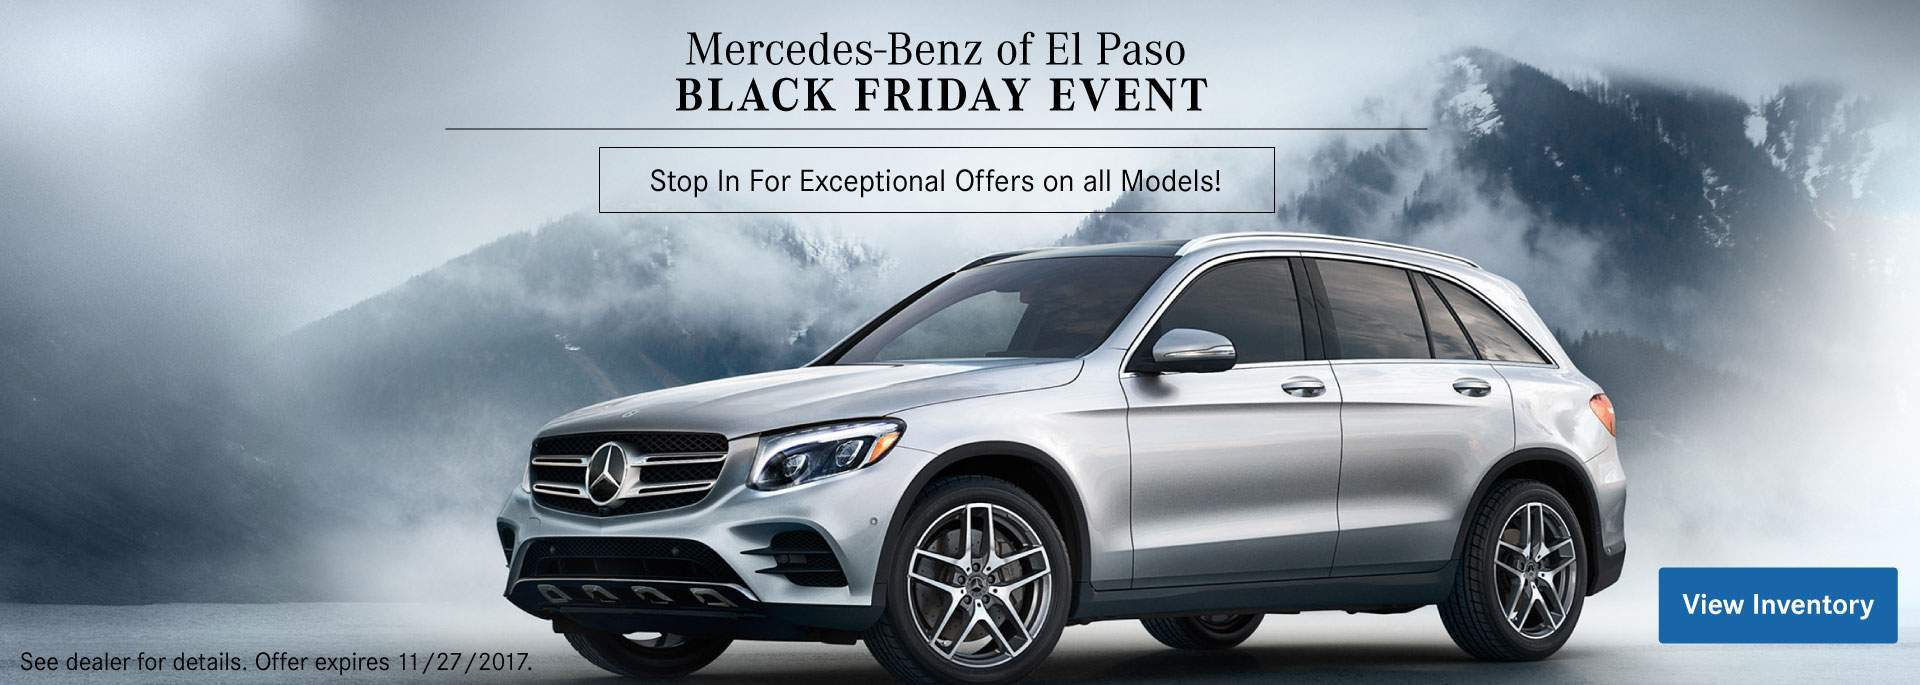 https://www.mercedesbenzelpaso.com/new-mercedes-benz-el-paso-tx